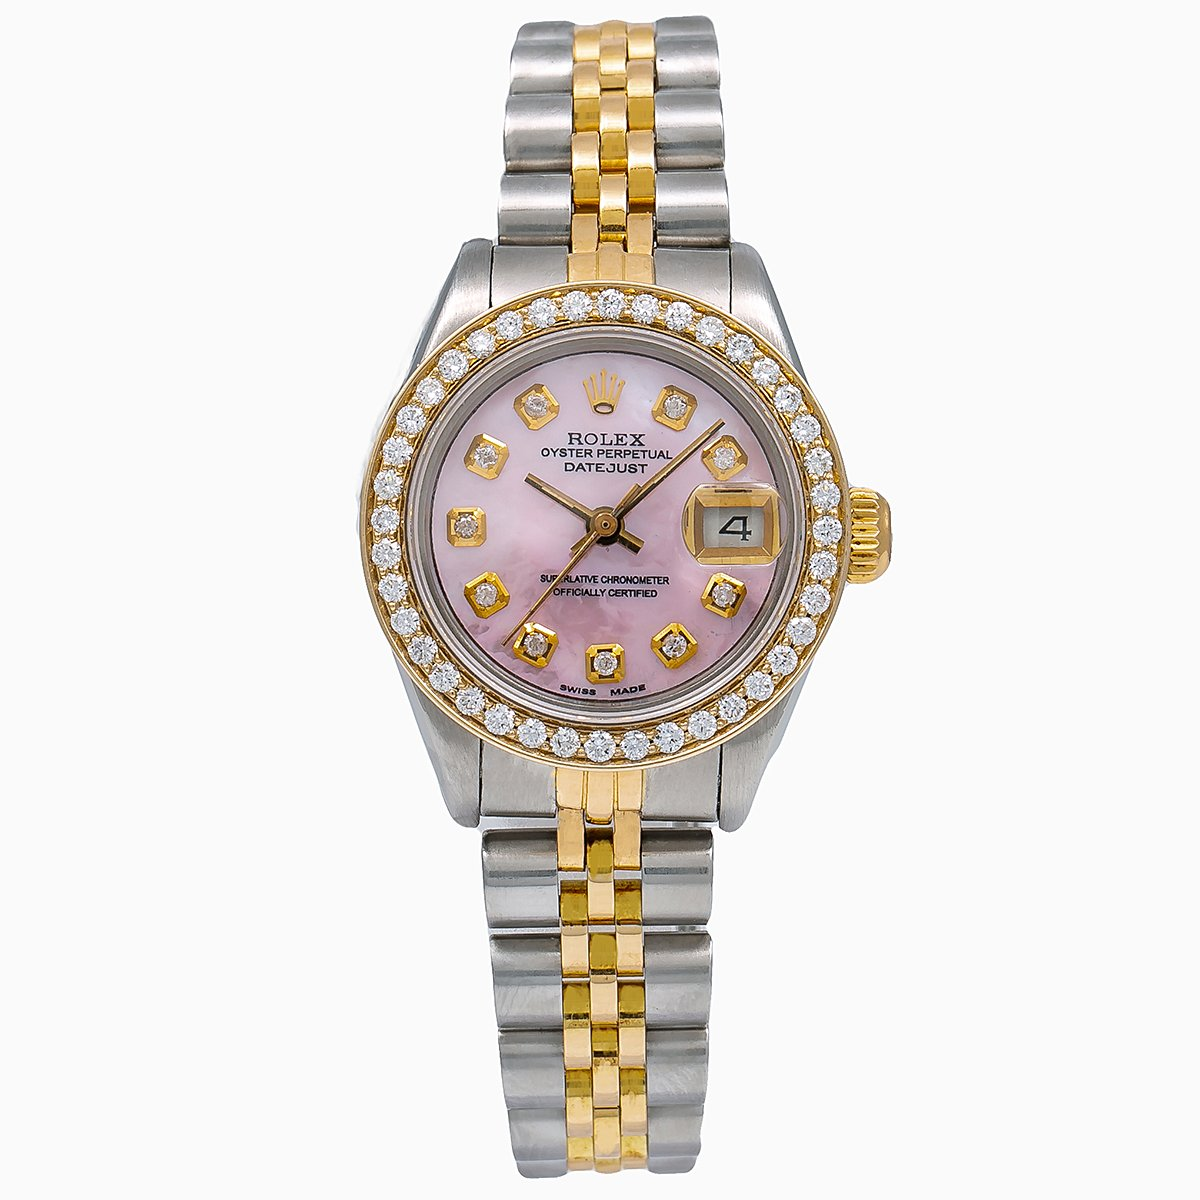 26mm Diamond Rolex Oyster Perpetual Lady-DateJust Pink MOP Watch 18k Gold Jubilee Bracelet Main Image